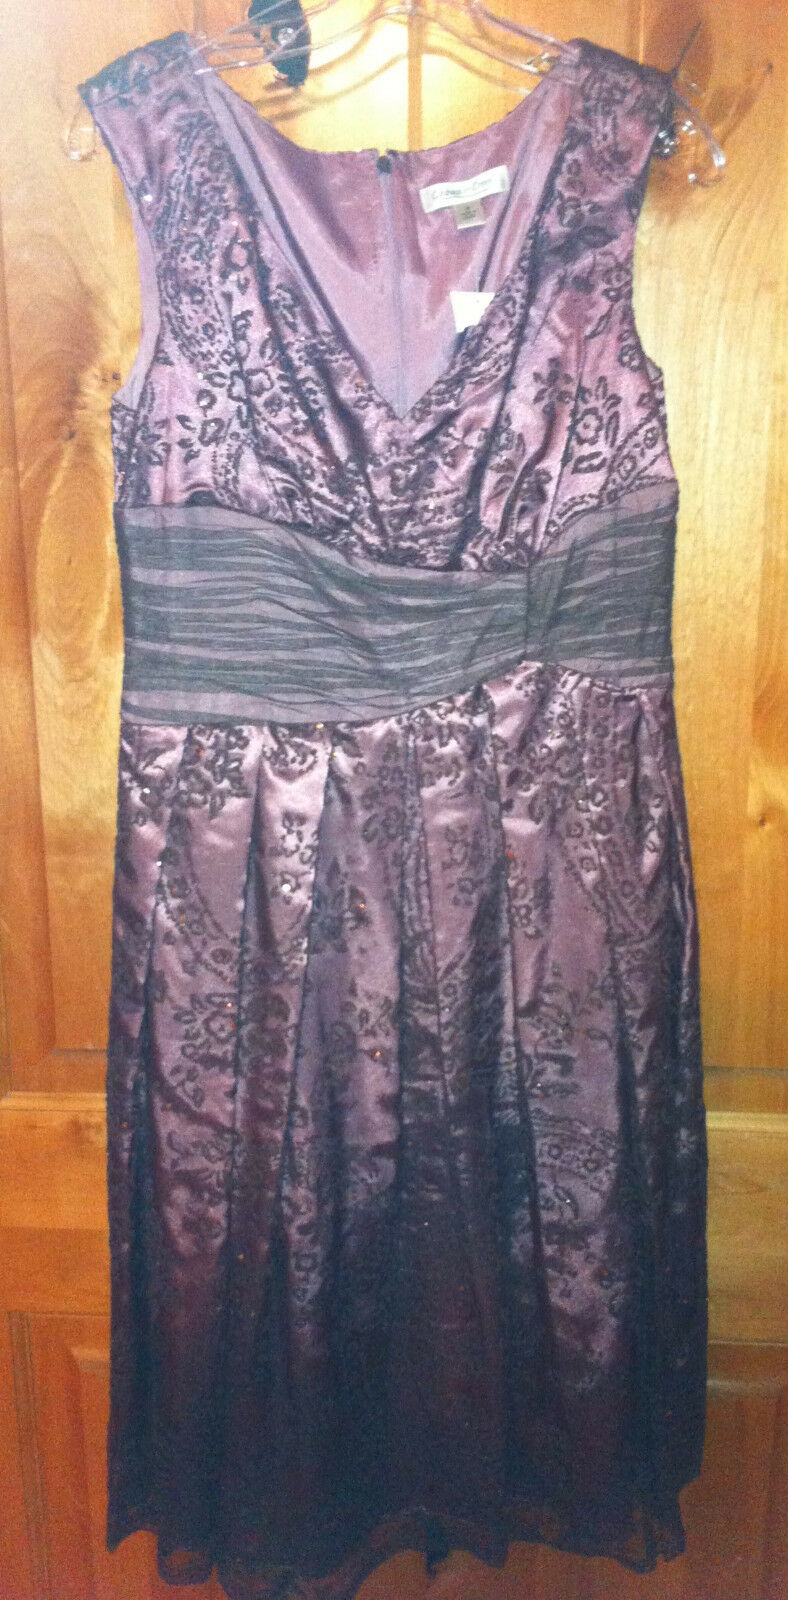 NWT COLDWATER CREEK Größe 8 STUNNING HOLIDAY DRESS BEADS SEQUIN OVER MESH lila